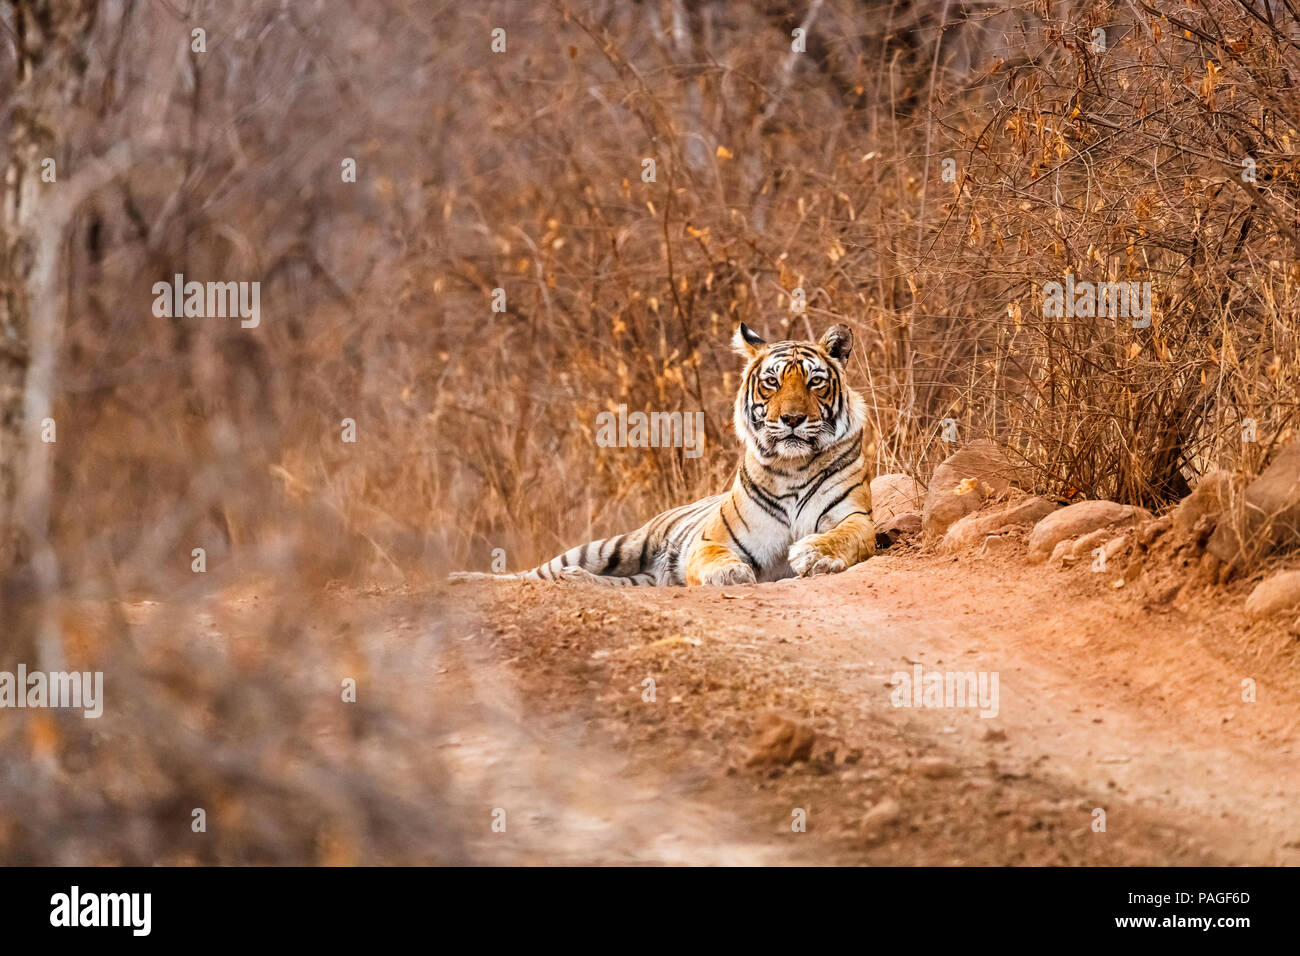 Indian wildlife: Female Bengal tiger (Panthera tigris) lying alert on a dusty track, Ranthambore National Park, Rajasthan, northern India, dry season - Stock Image